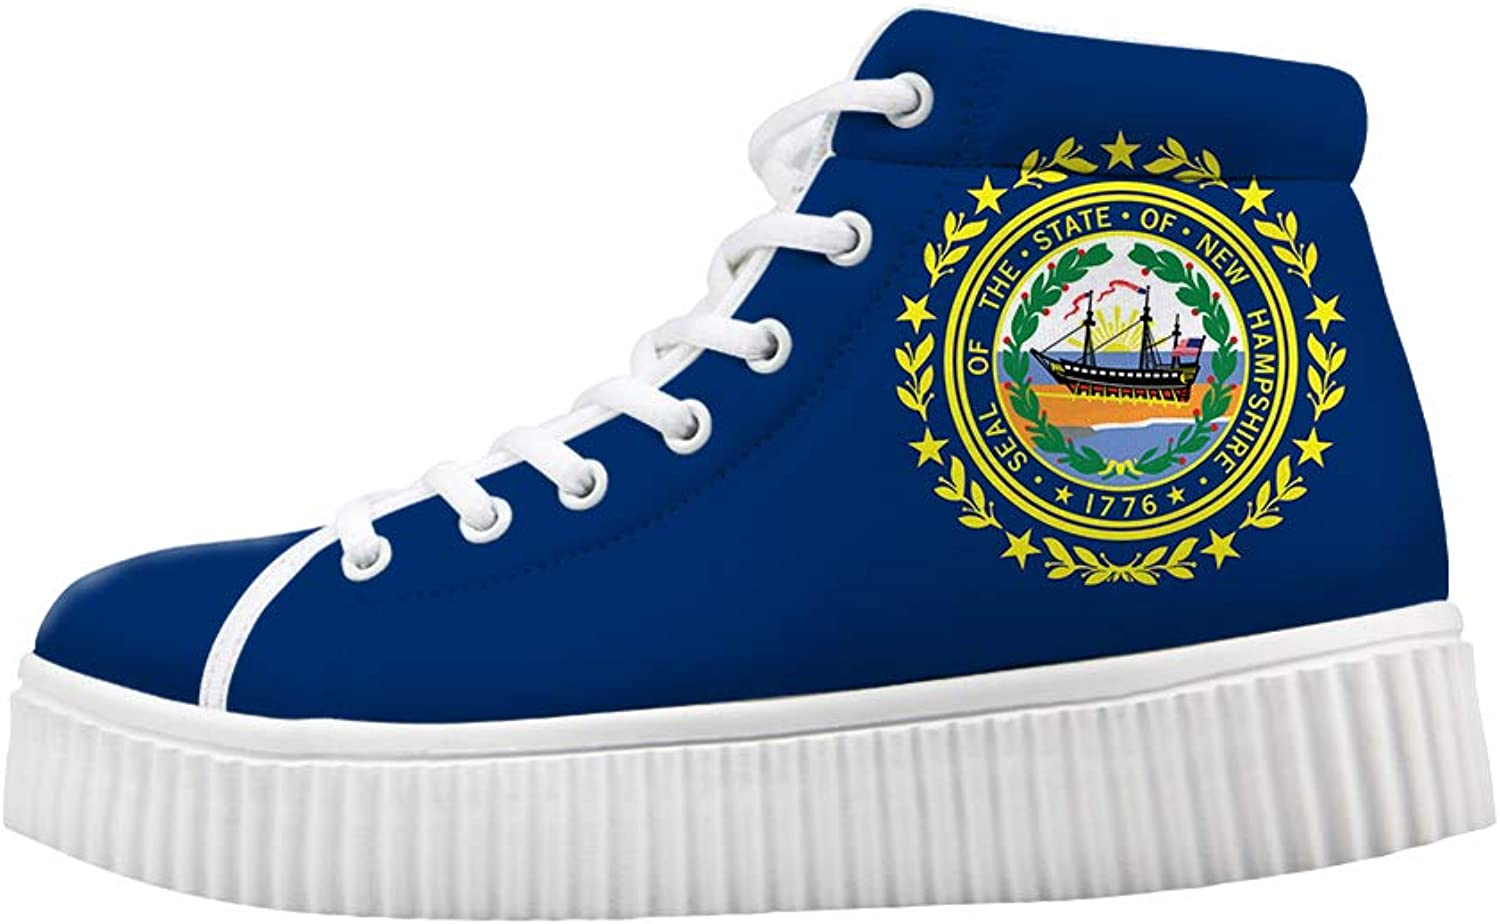 Owaheson Platform Lace up Sneaker Casual Chunky Walking shoes High Top Women Granite State New Hampshire Flag